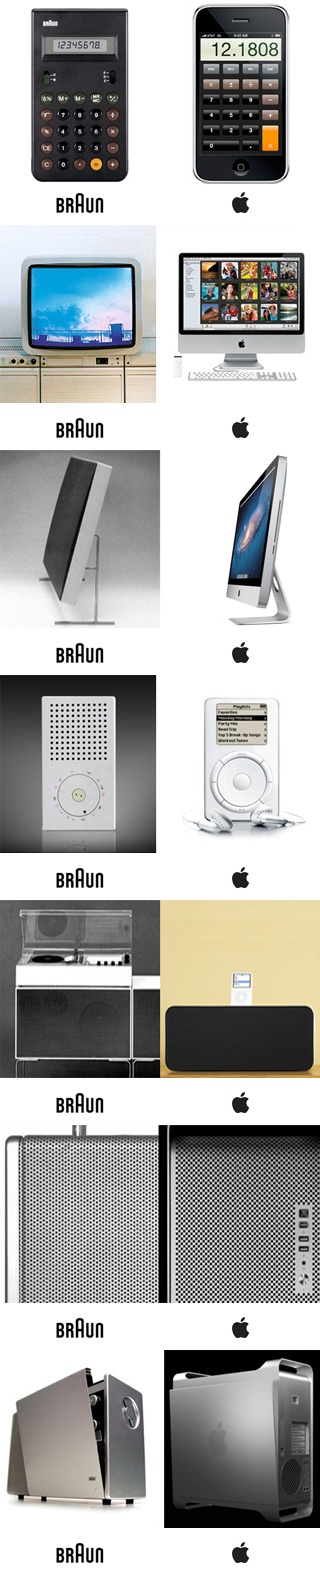 Jonathan (Jony) Ive, Senior Vice President of Industrial Design at Apple, is a good friend of our new pal Dieter Rams, and takes inspiration from Braun's minimalist aesthetic and focus on function. The examples illustrate the similarities in design thinking and, in most cases, a homage to fifty years of design innovation by Braun.